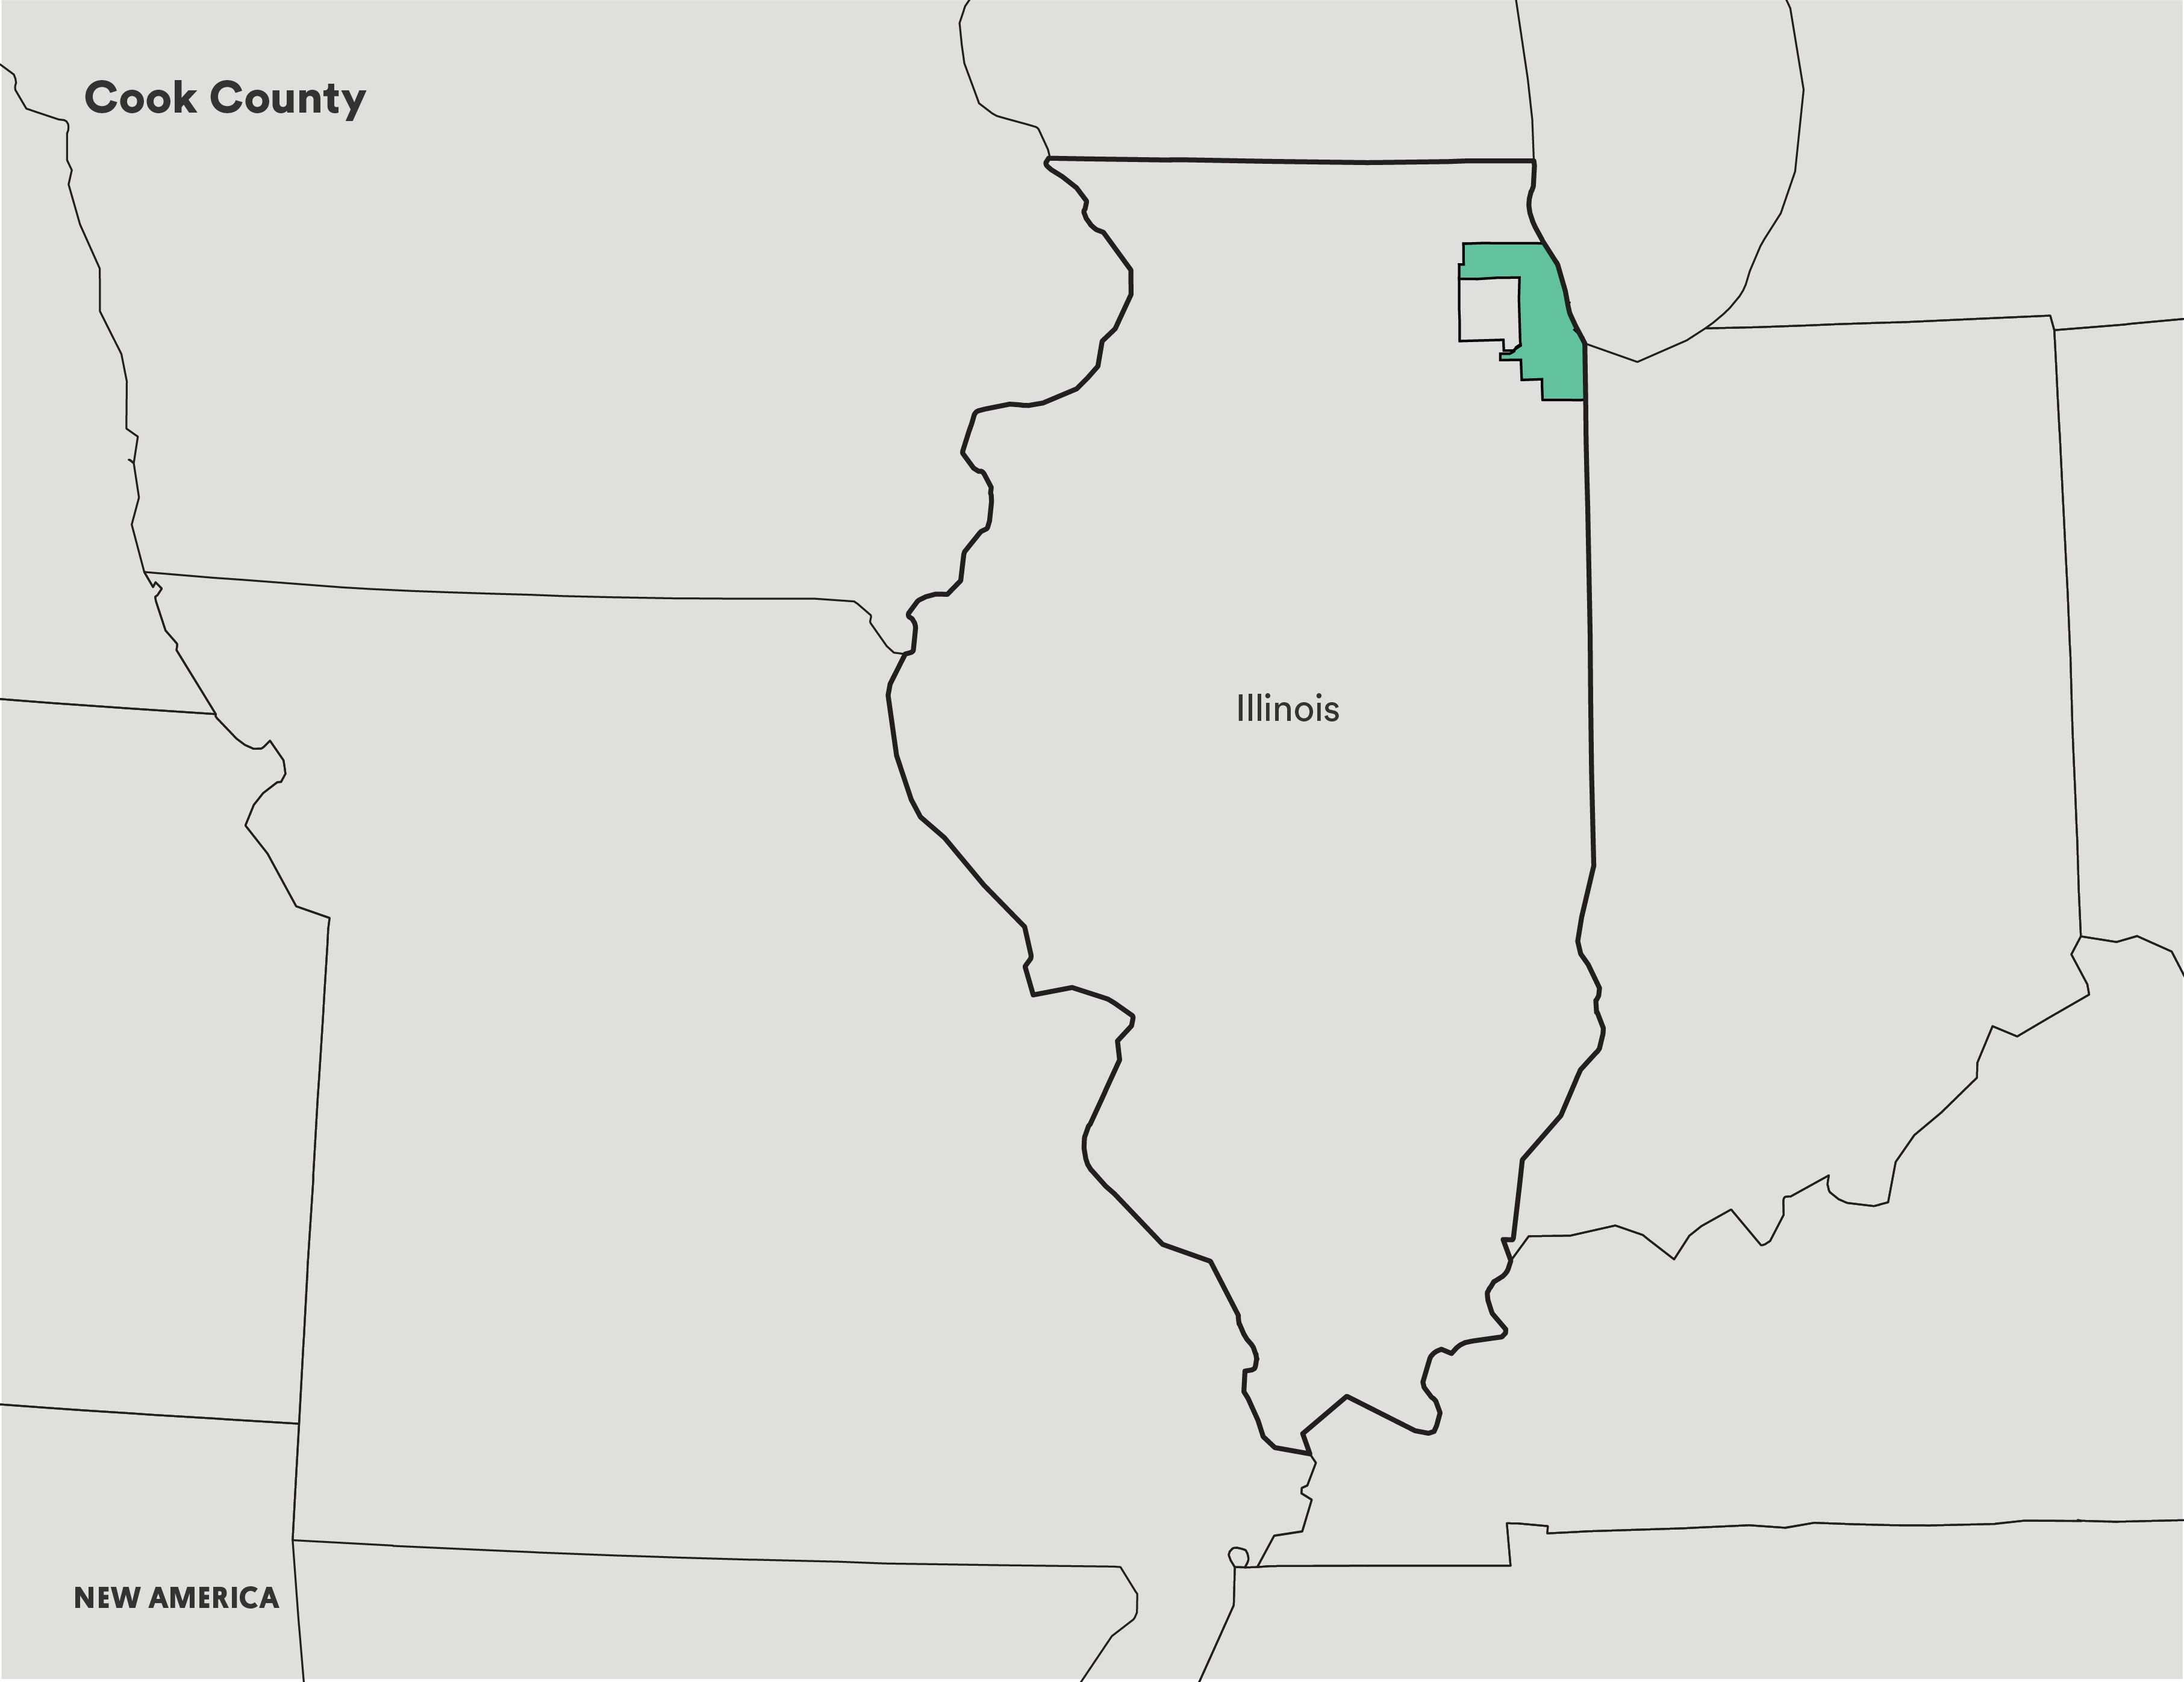 Mapping the Opioid Epidemic: Case Study: Cook County, Illinois on il city map, il voting districts map, il state map, pike co il map, il regional map, ga counties map, il world map, il zip map, il water map, il senate map, chillicothe il map, counties in il map, wi counties map, bloomington il map, wayne il map, il community college districts map, il township map, decatur il map, illinois map, il construction map,